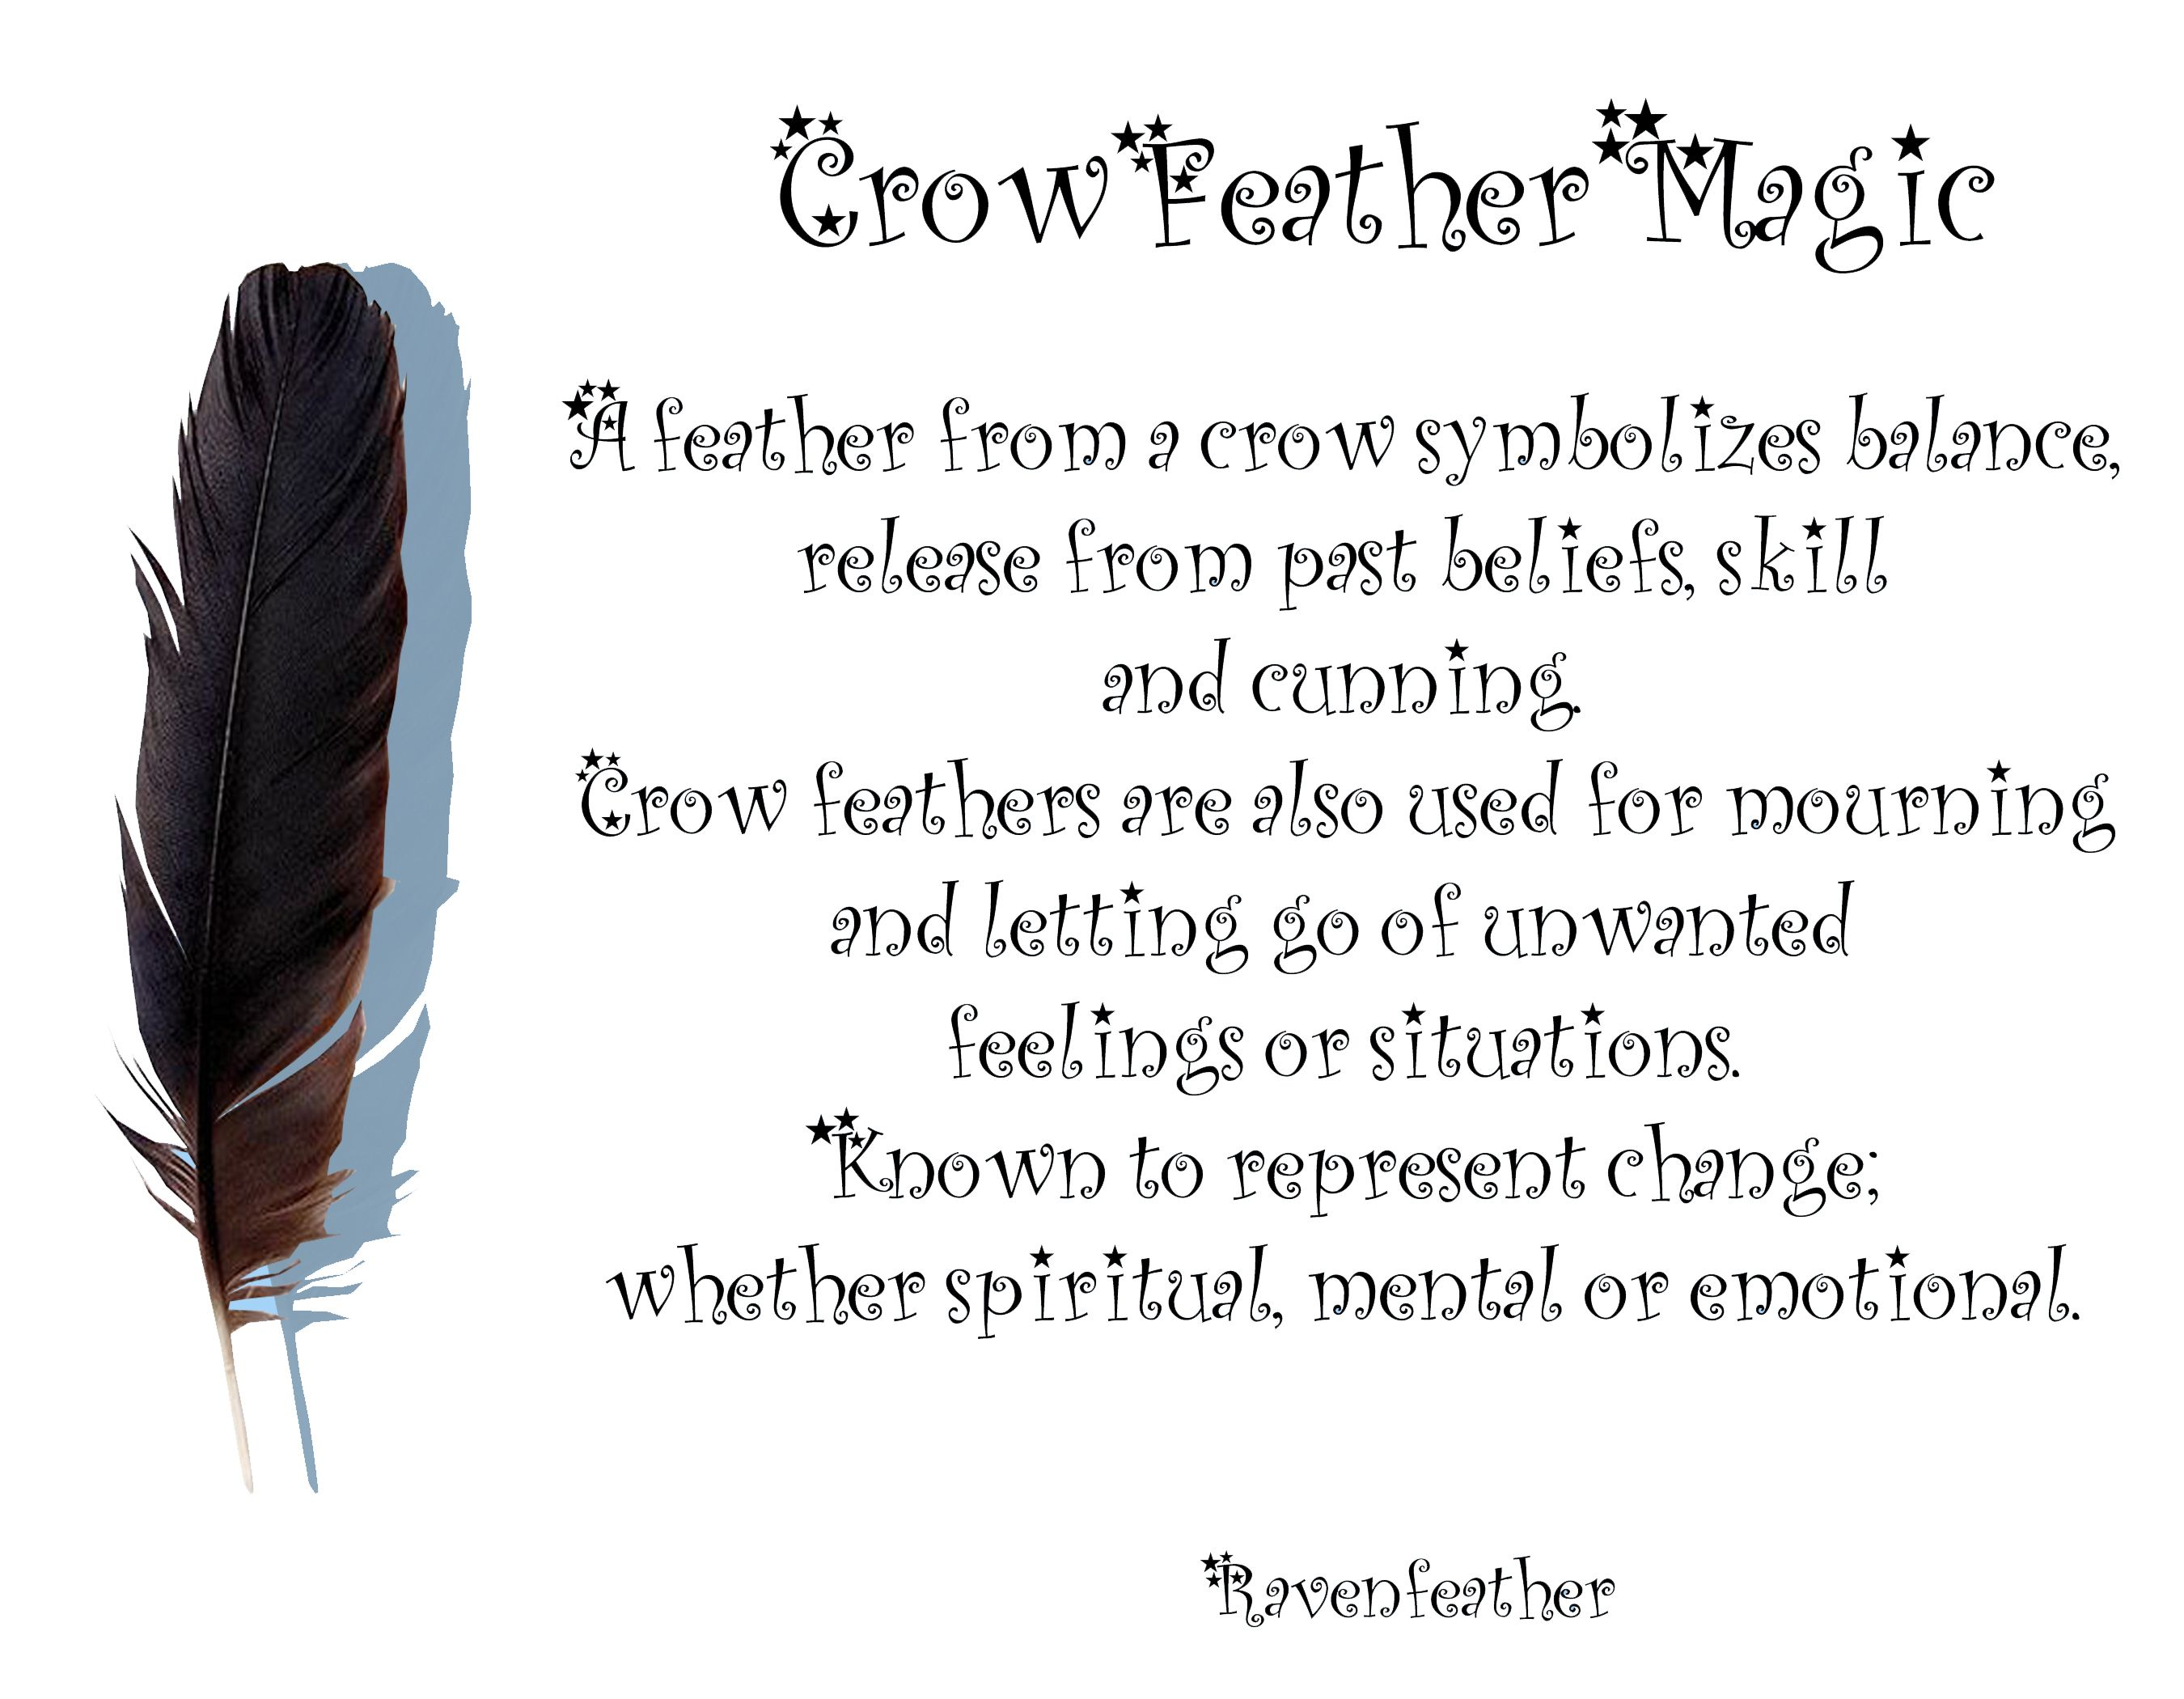 Bards and tales feather sign jared pinterest feather signs crow feather magic please check your local and federal guidelines for feather collection and possession biocorpaavc